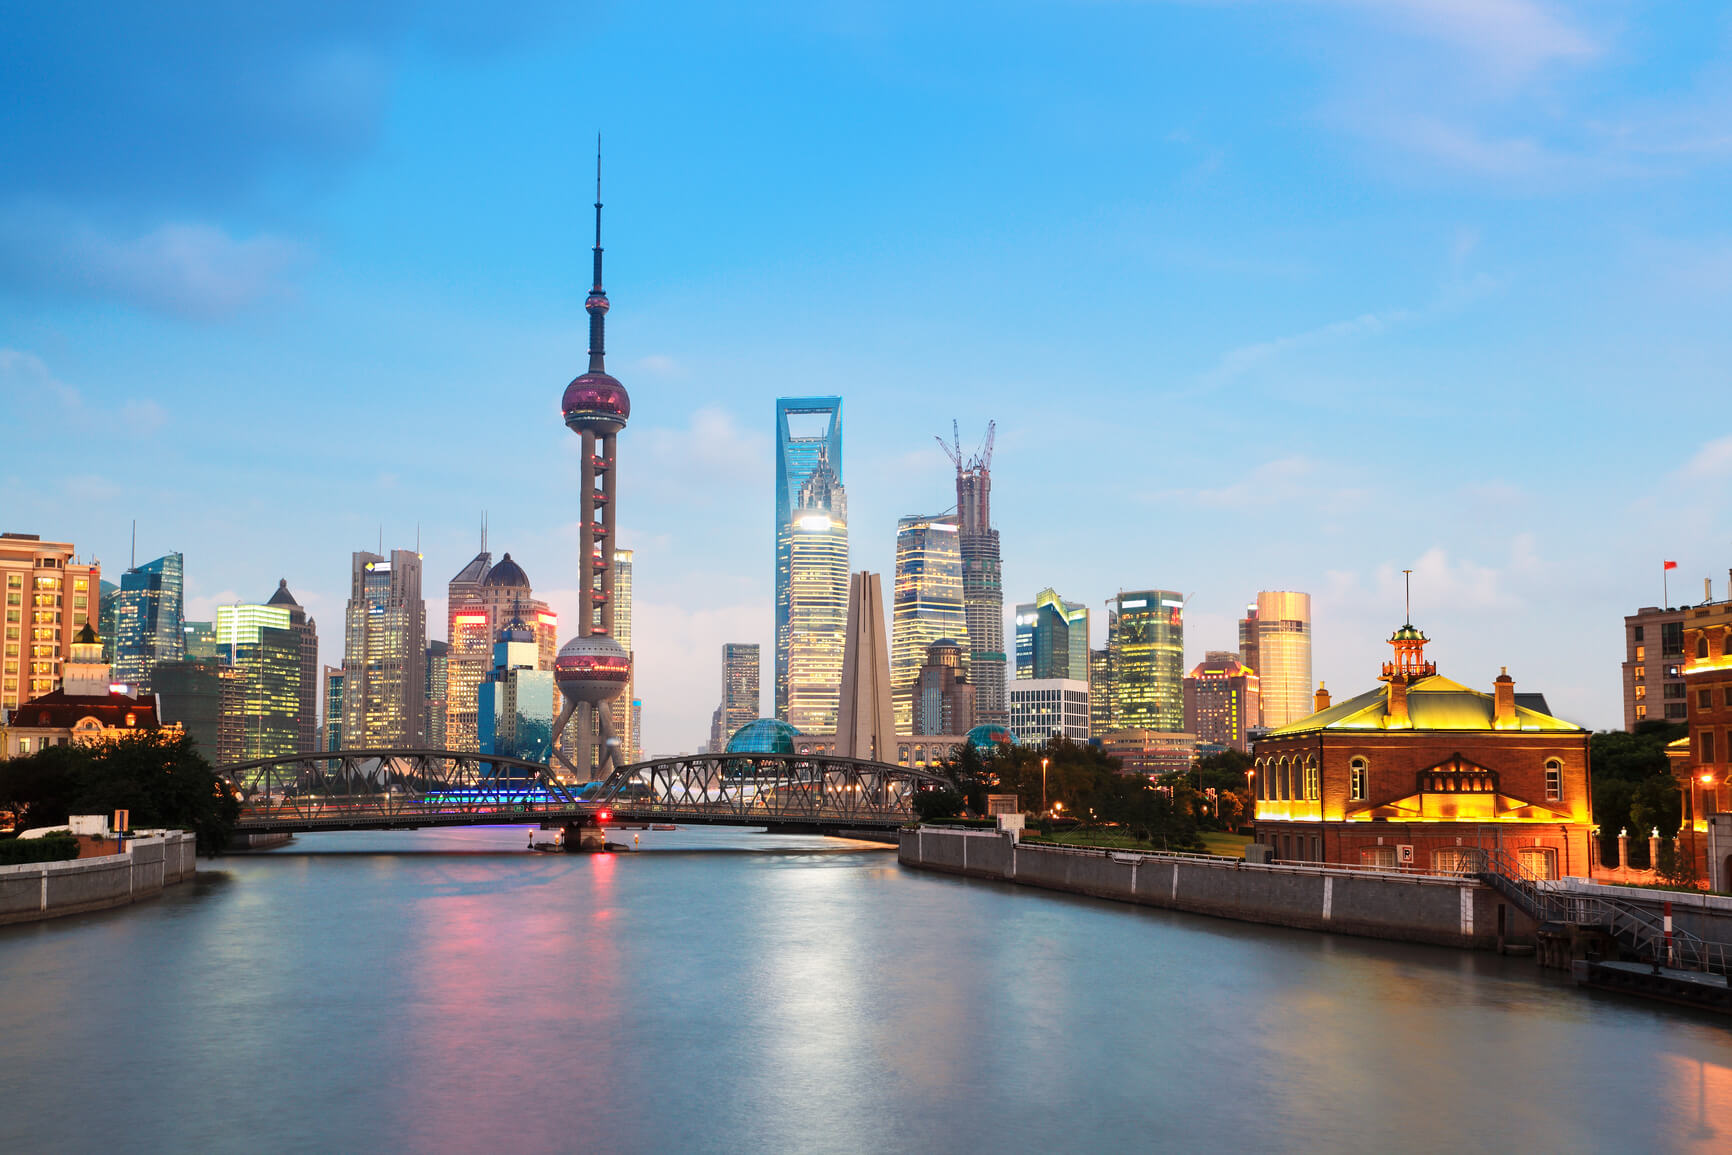 San Jose, California to Shanghai, China for only $454 roundtrip